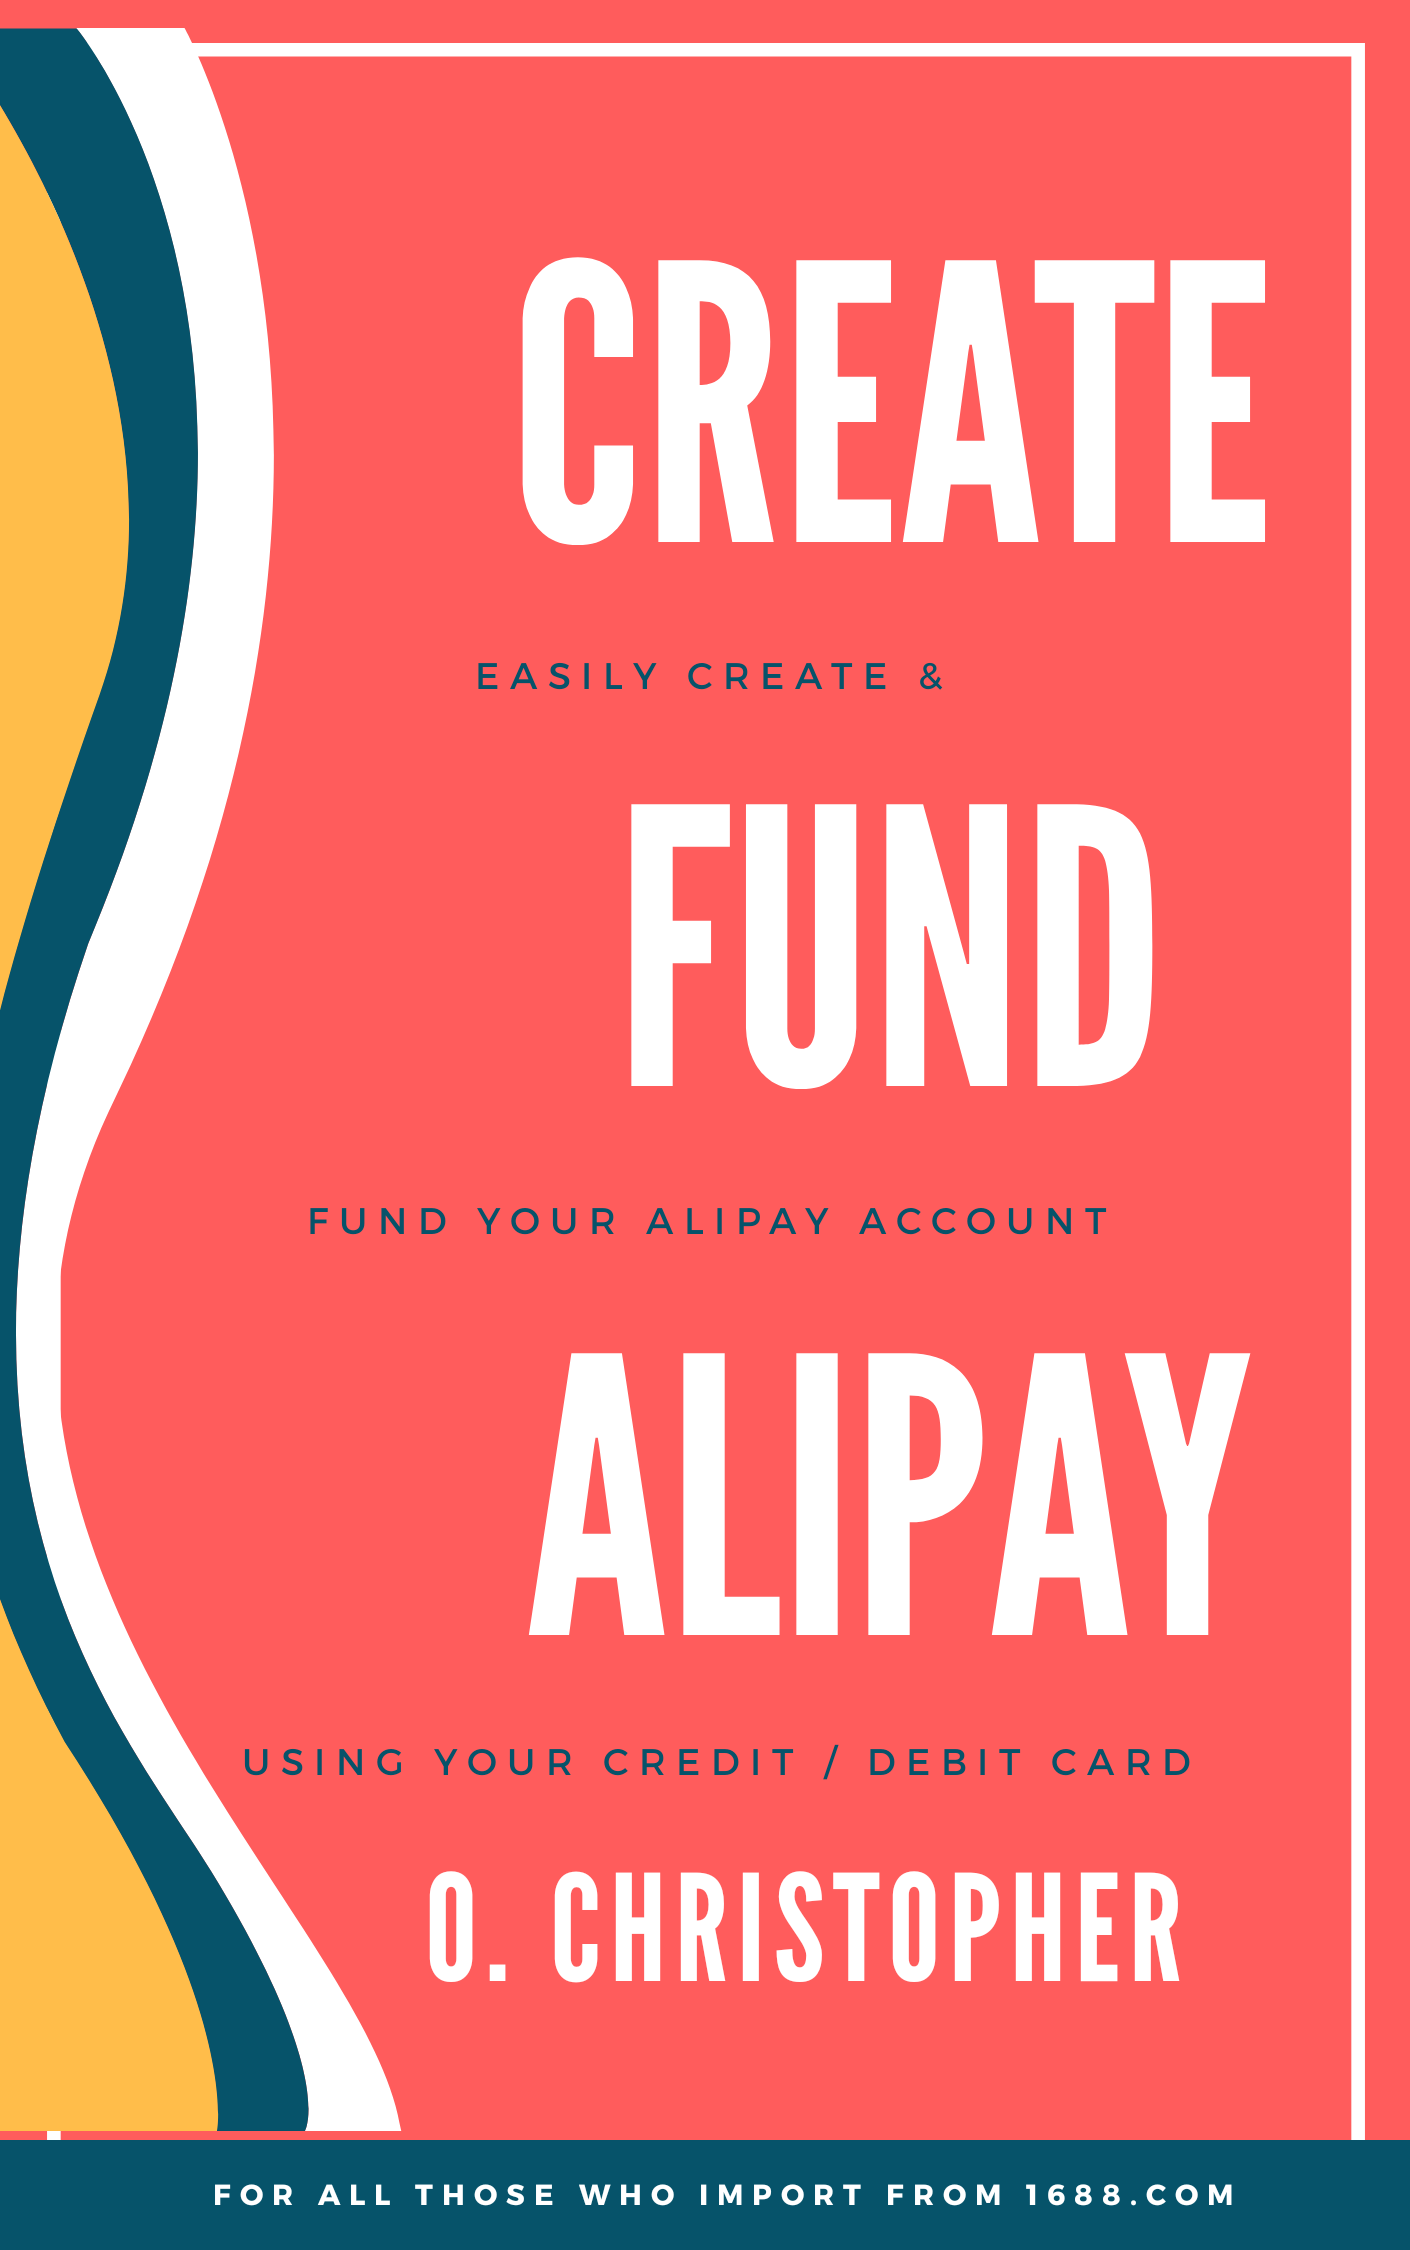 Guide to easily open and fund Alipay account with any credit or debit card - A to Z 1688 Importation